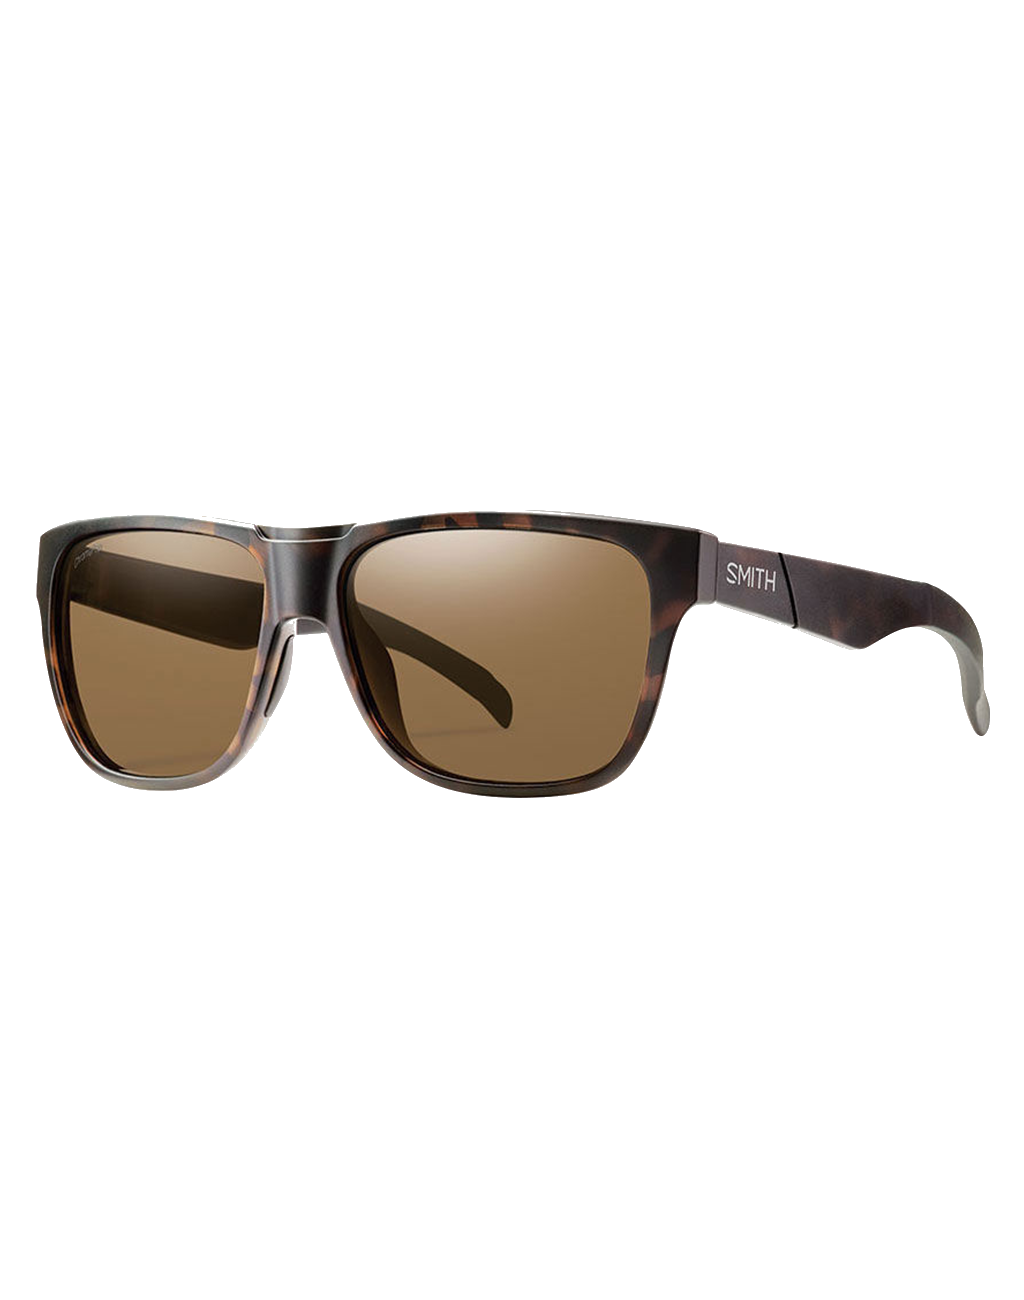 Smith Optics Lowdown Polarized SunglassesTortoise_master_image